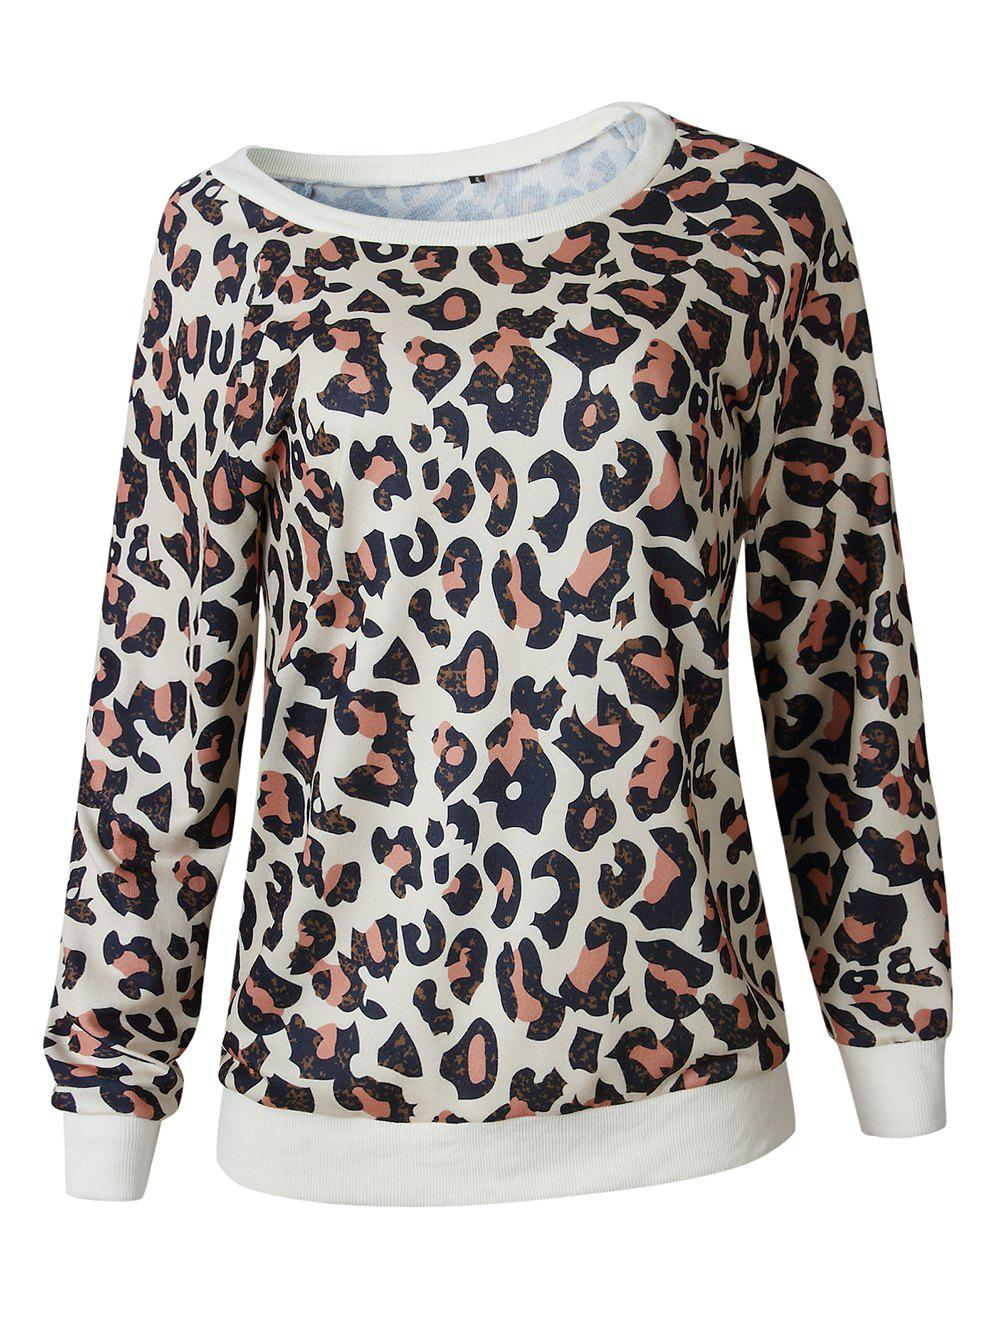 f2799fc64ae0d Affordable Women Casual Leopard Print Long Sleeve Sweatshirt Pullover Shirt  Top Blouse